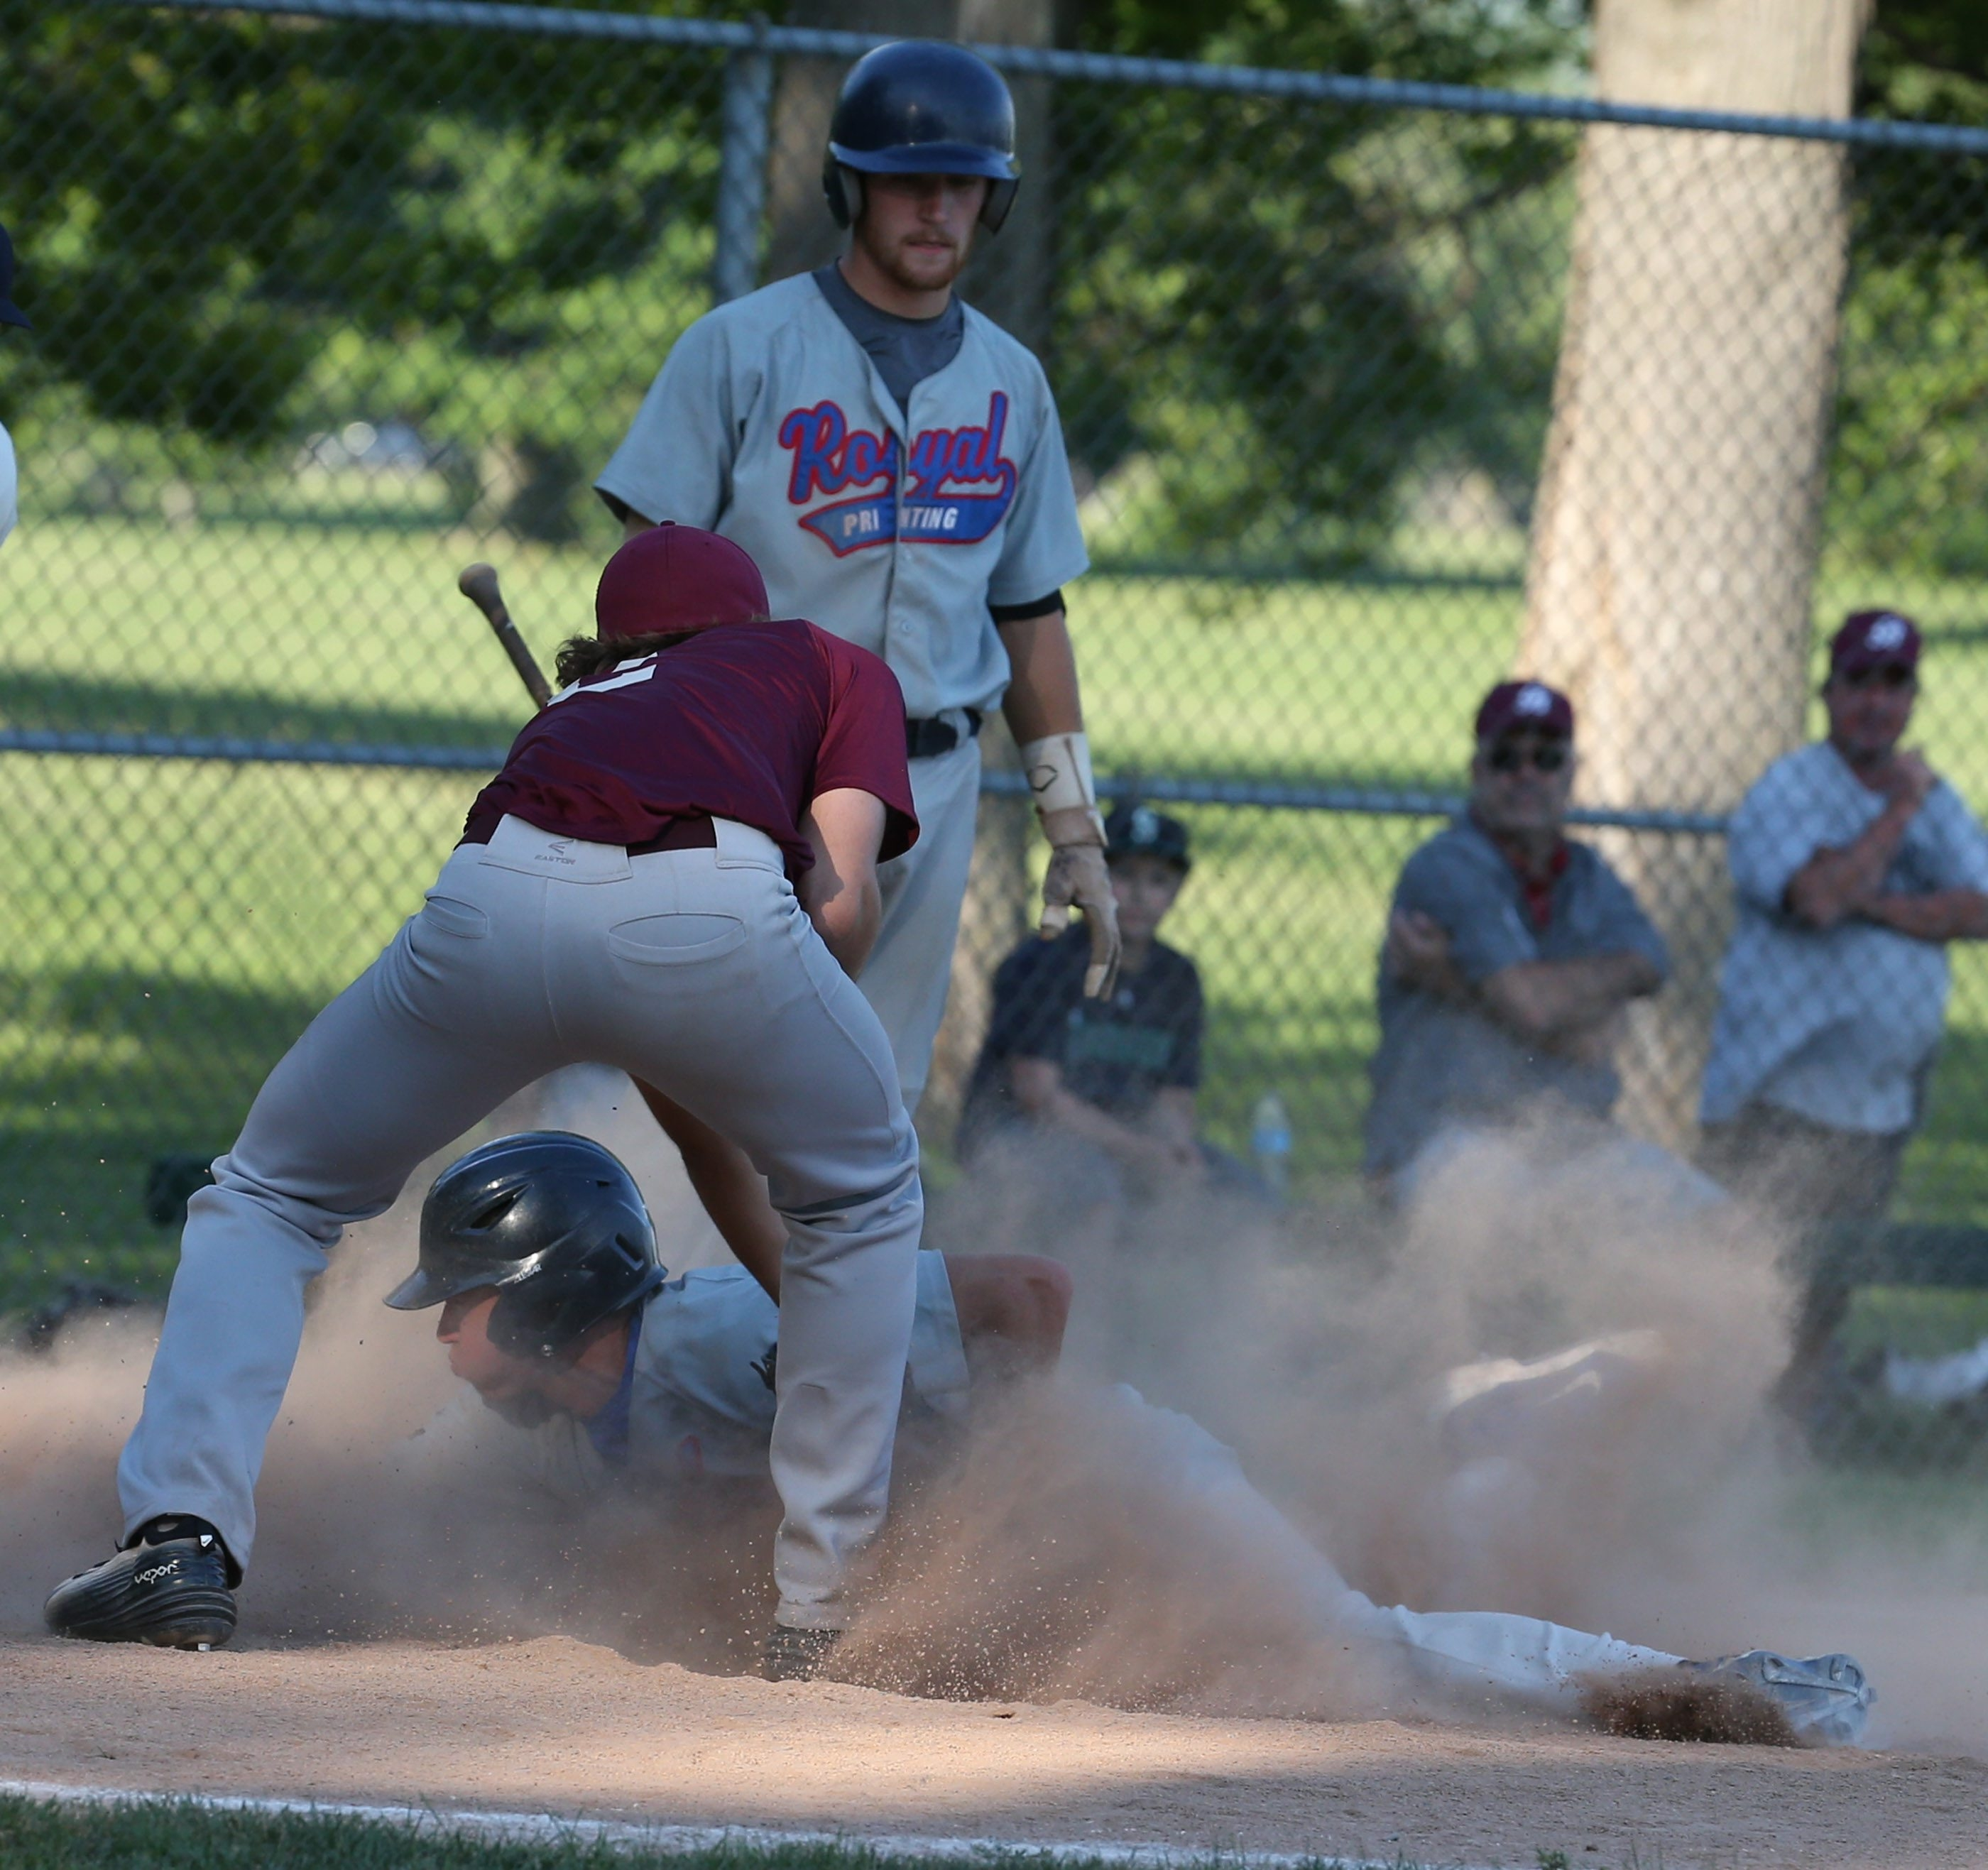 Royal Printing's  Ken Johnson arrives at the plate in a cloud of dust as he scores in the second inning of the local All-American Amateur Baseball Association semifinal at Delaware Park Thursday.